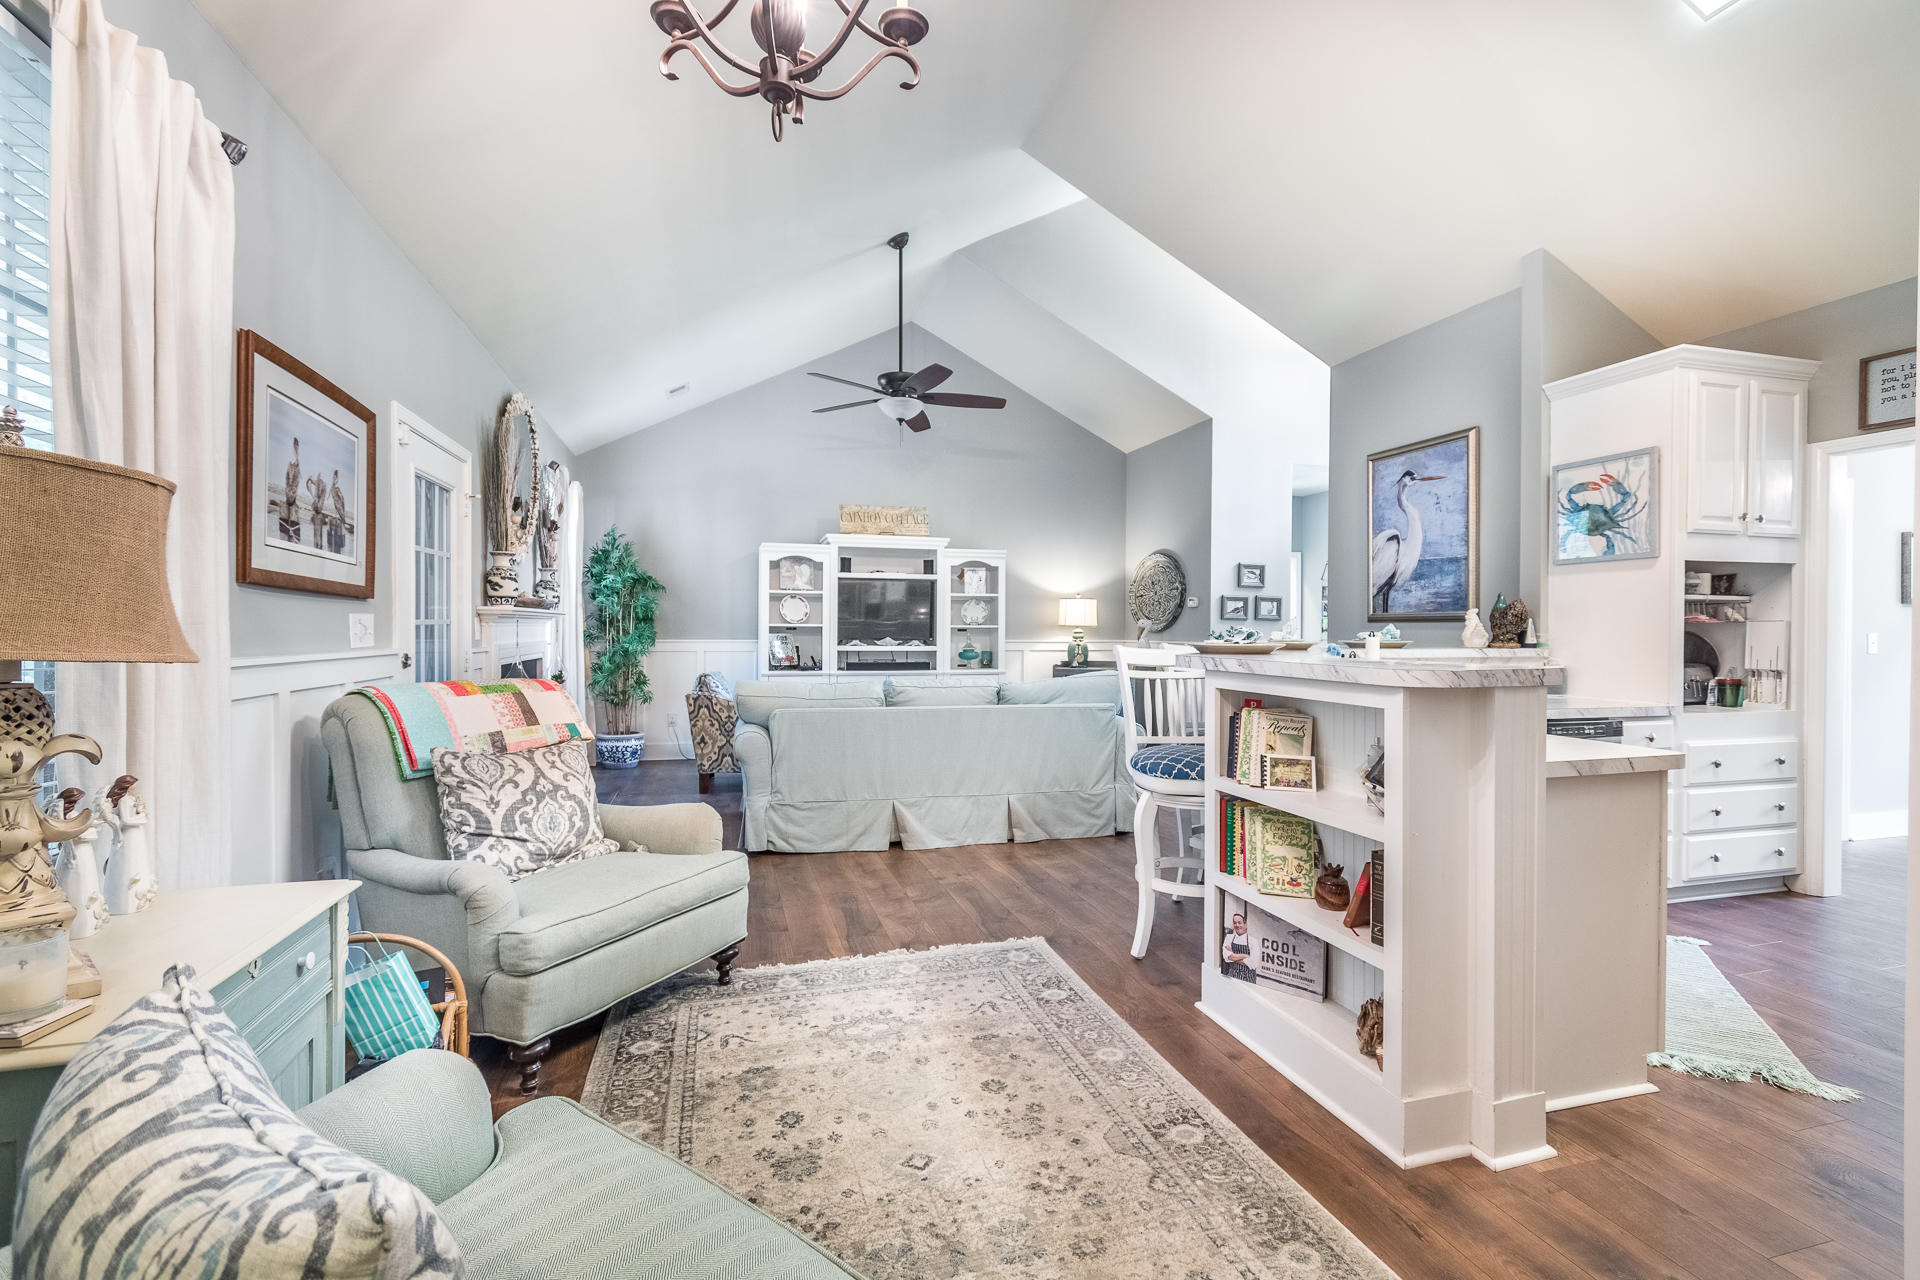 Cainhoy Landing Homes For Sale - 203 Ferry Point, Charleston, SC - 17